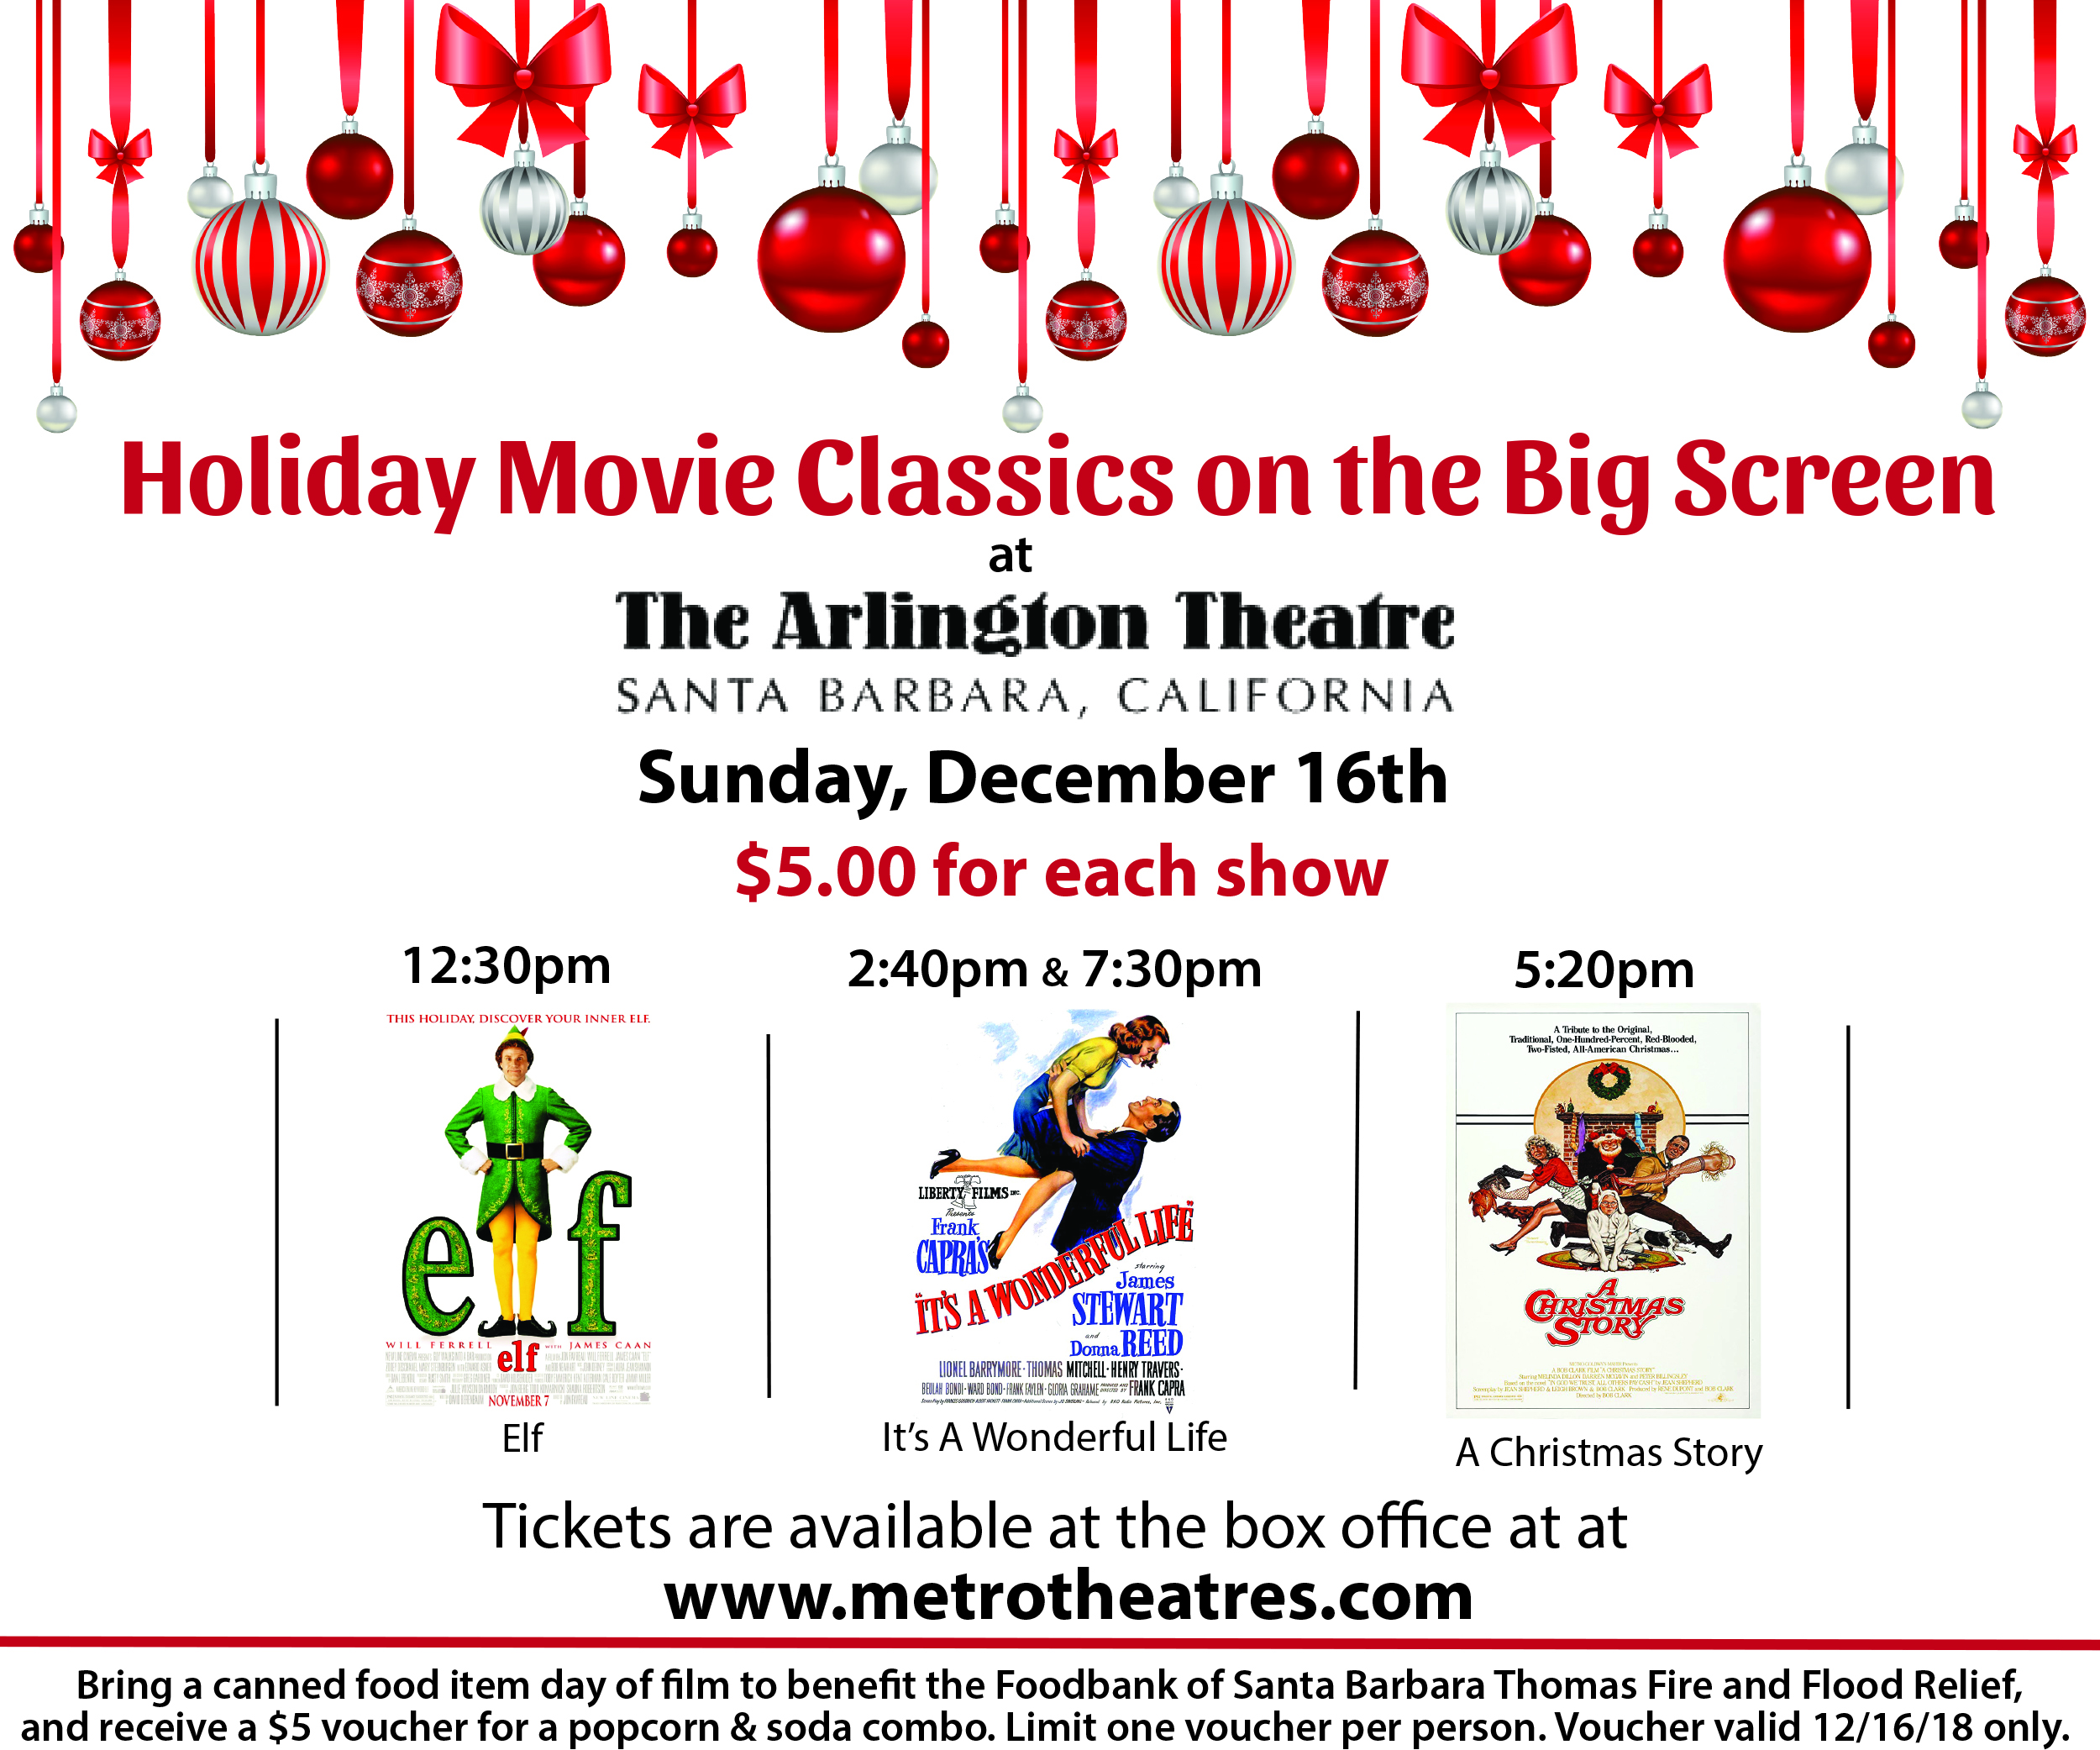 Holiday Classics at the Arlington